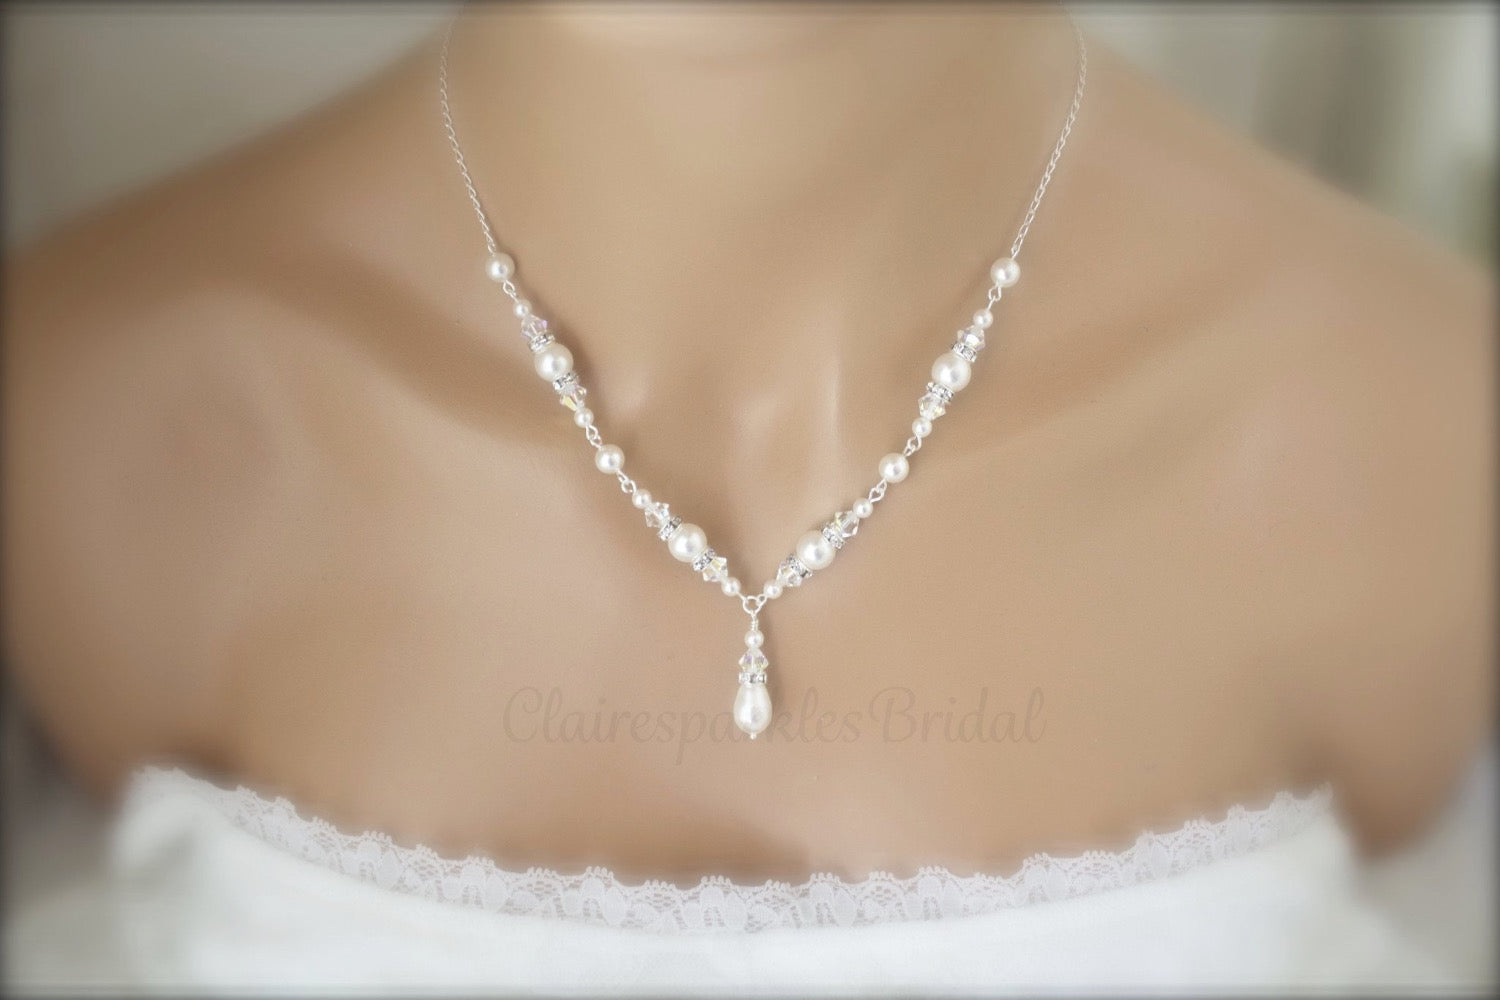 Pearl Necklace, Bracelet and Earring Sets for Brides - Clairesbridal - 2